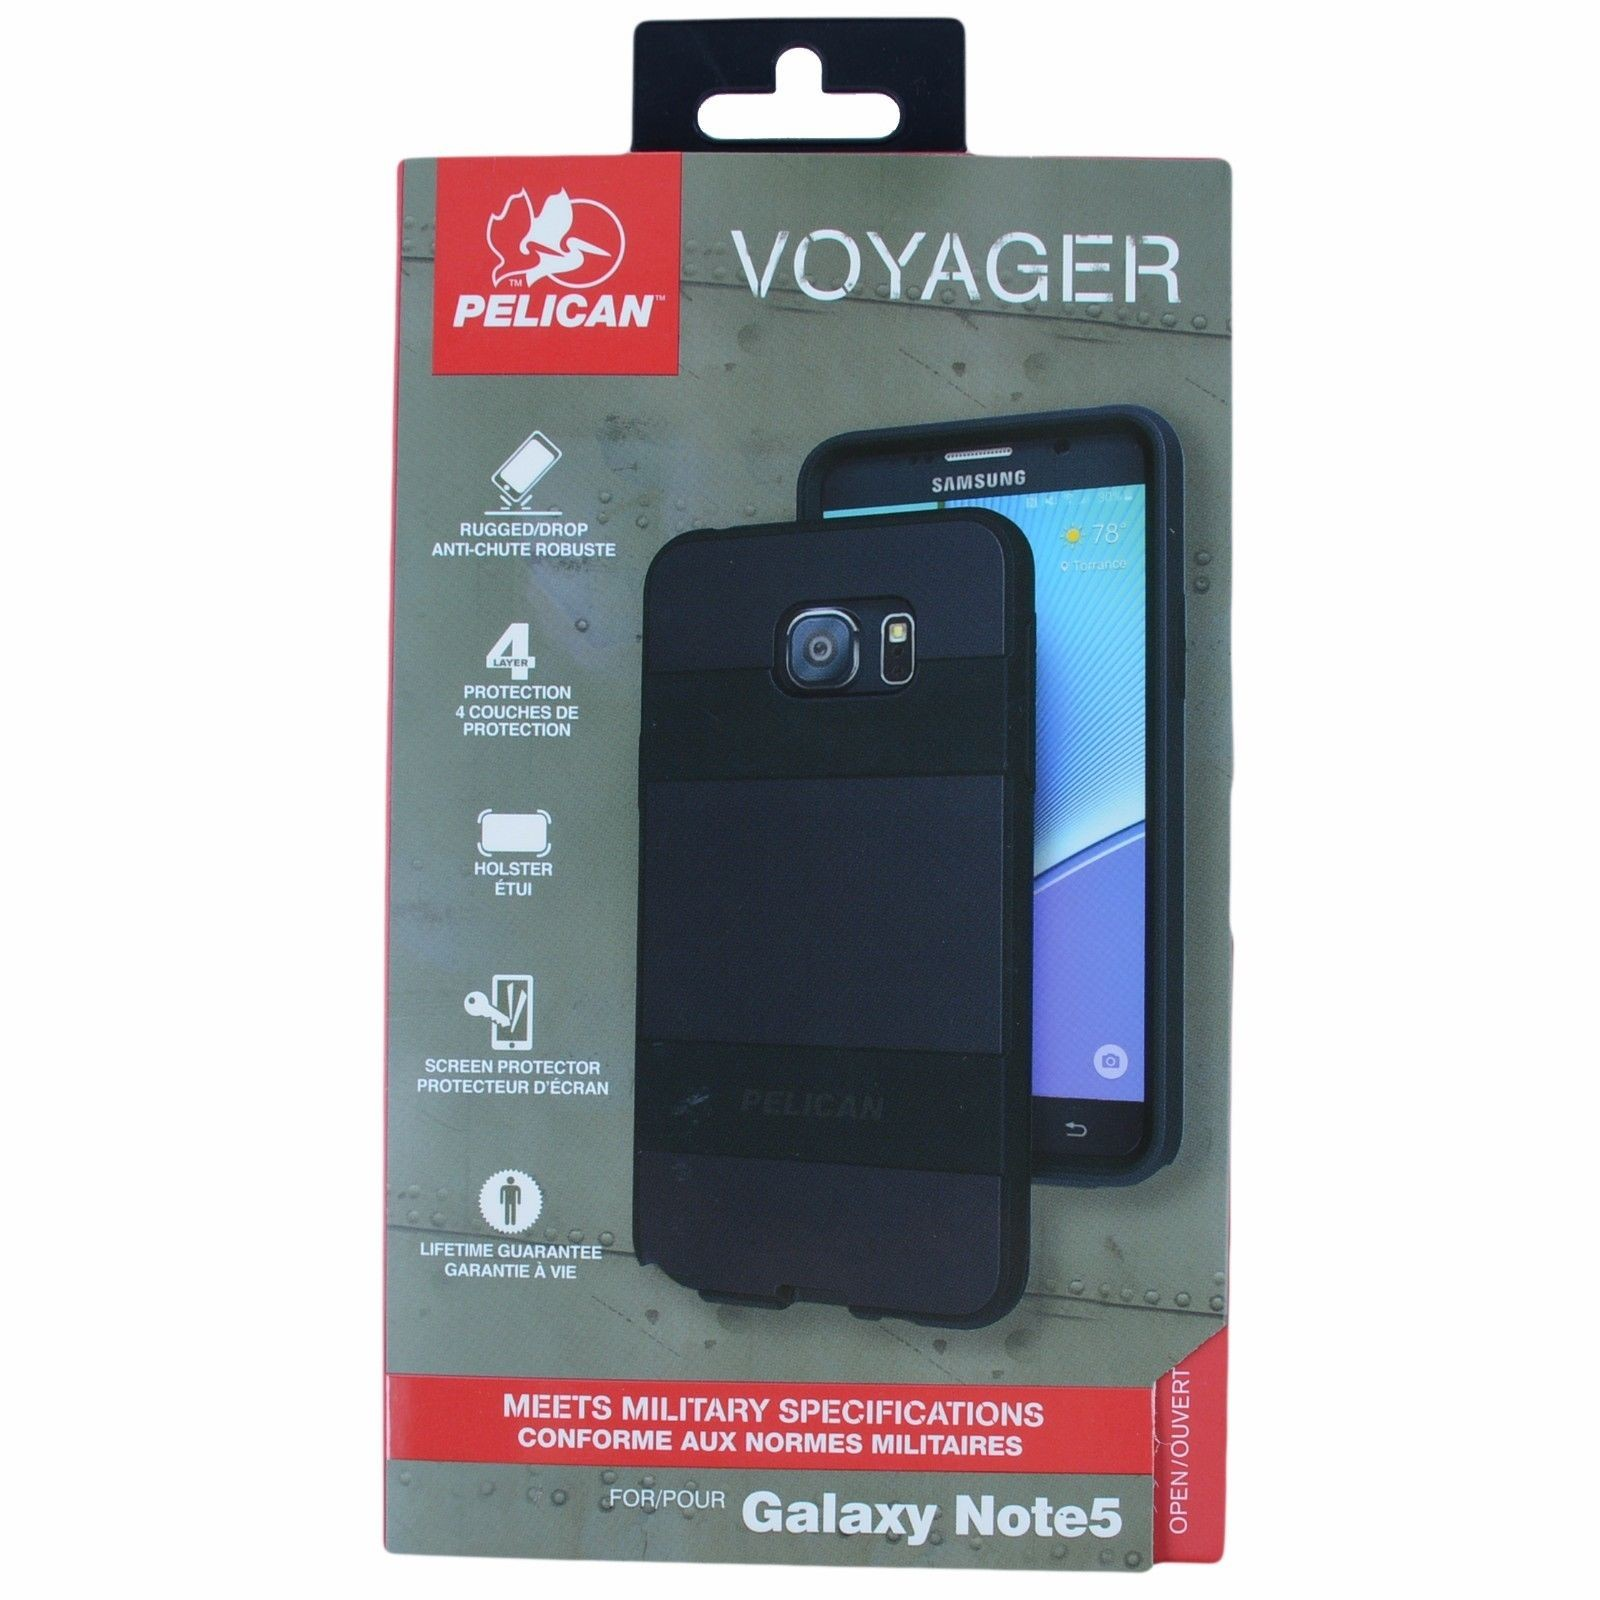 Original Pelican Voyager Series Case & Holster Clip for Samsung Galaxy Note 5